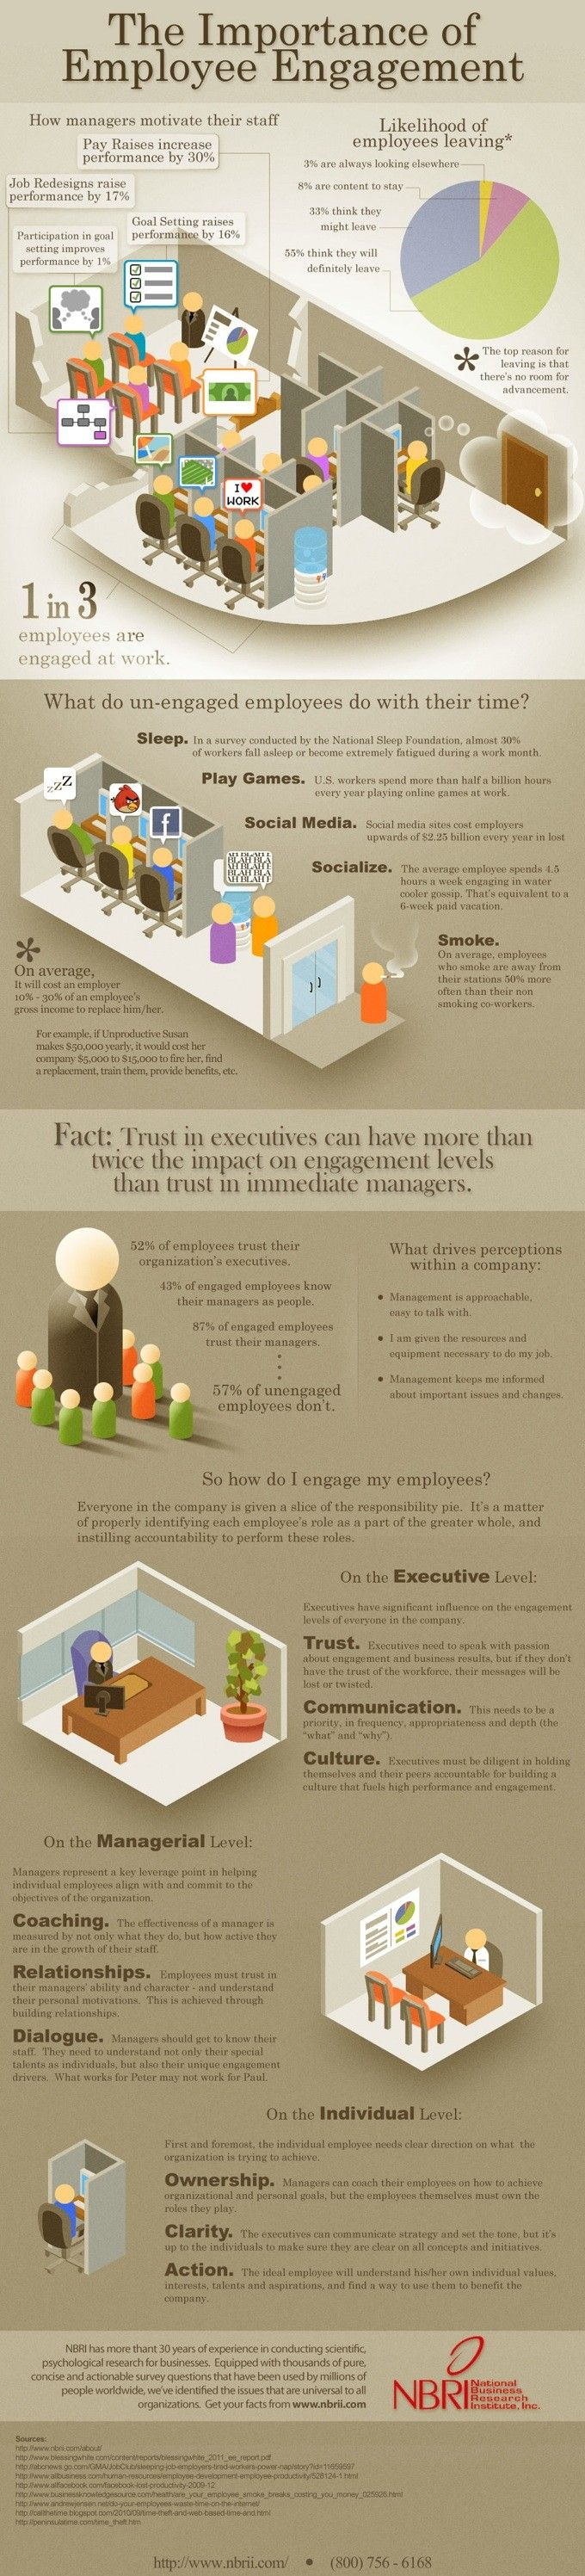 Employee Engagement - A Business Management Concept | Business